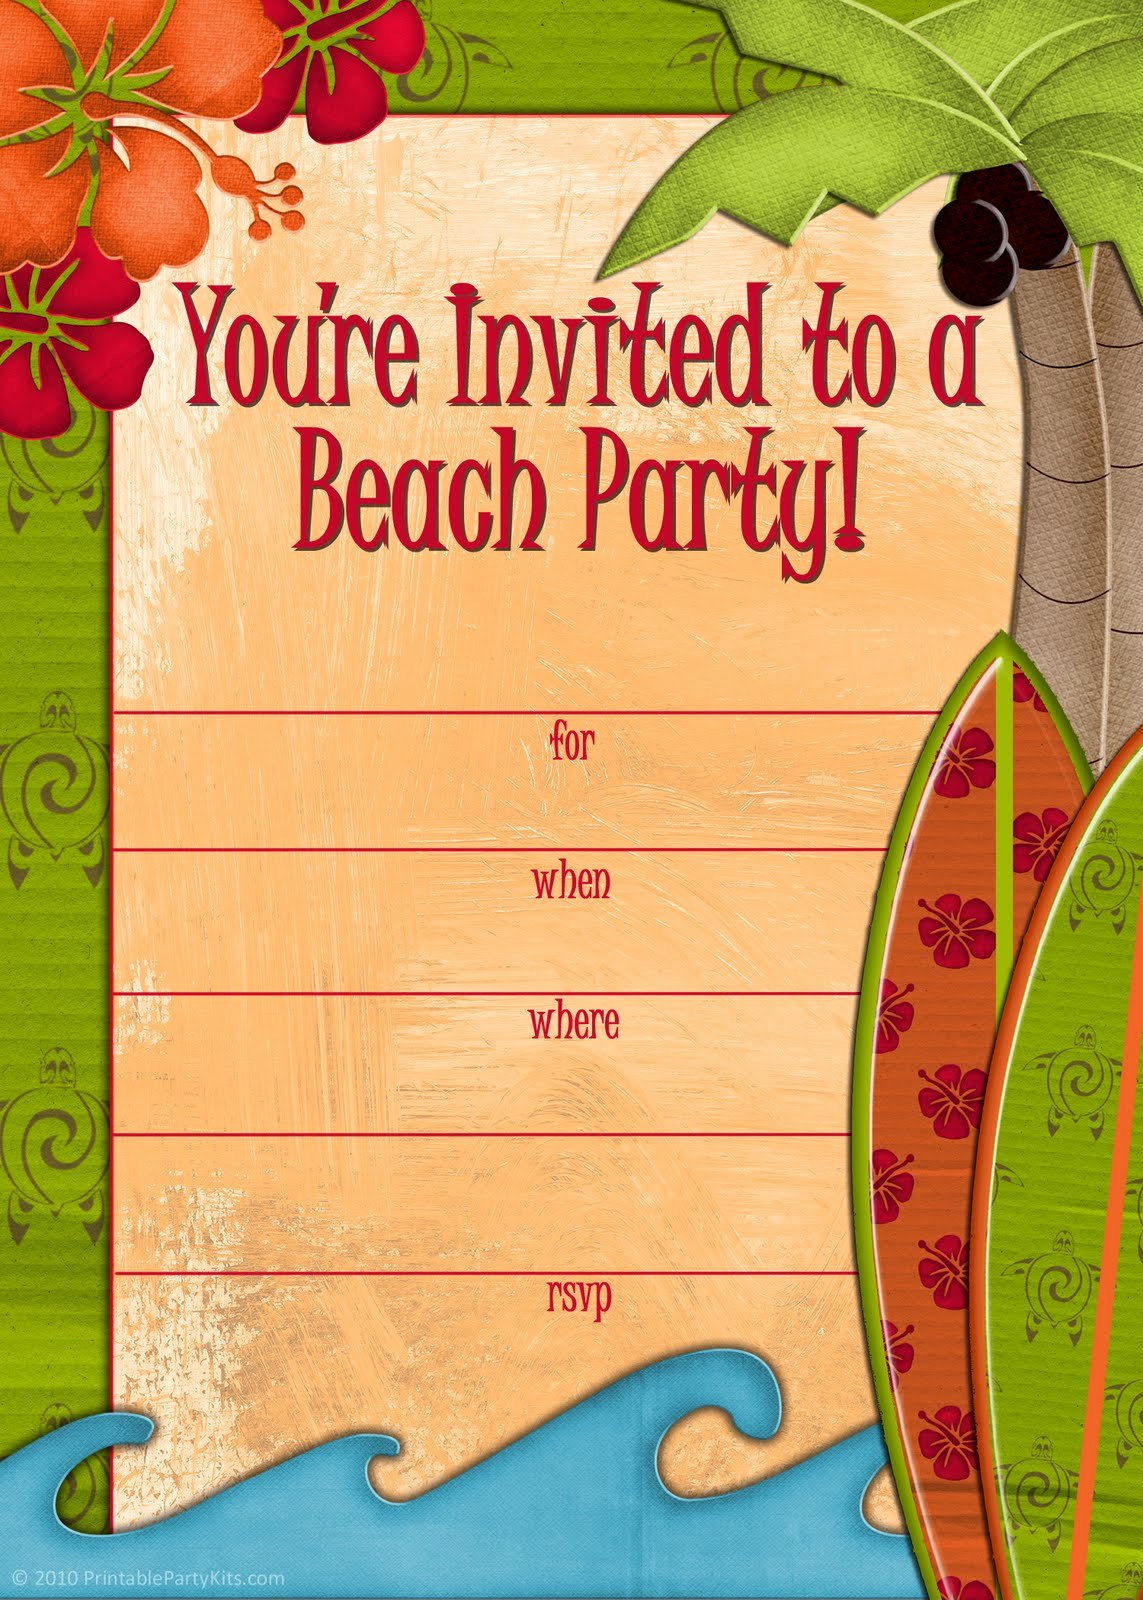 Beach Party Invitation Template Luxury Free Printable Party Invitations Free Invites for A